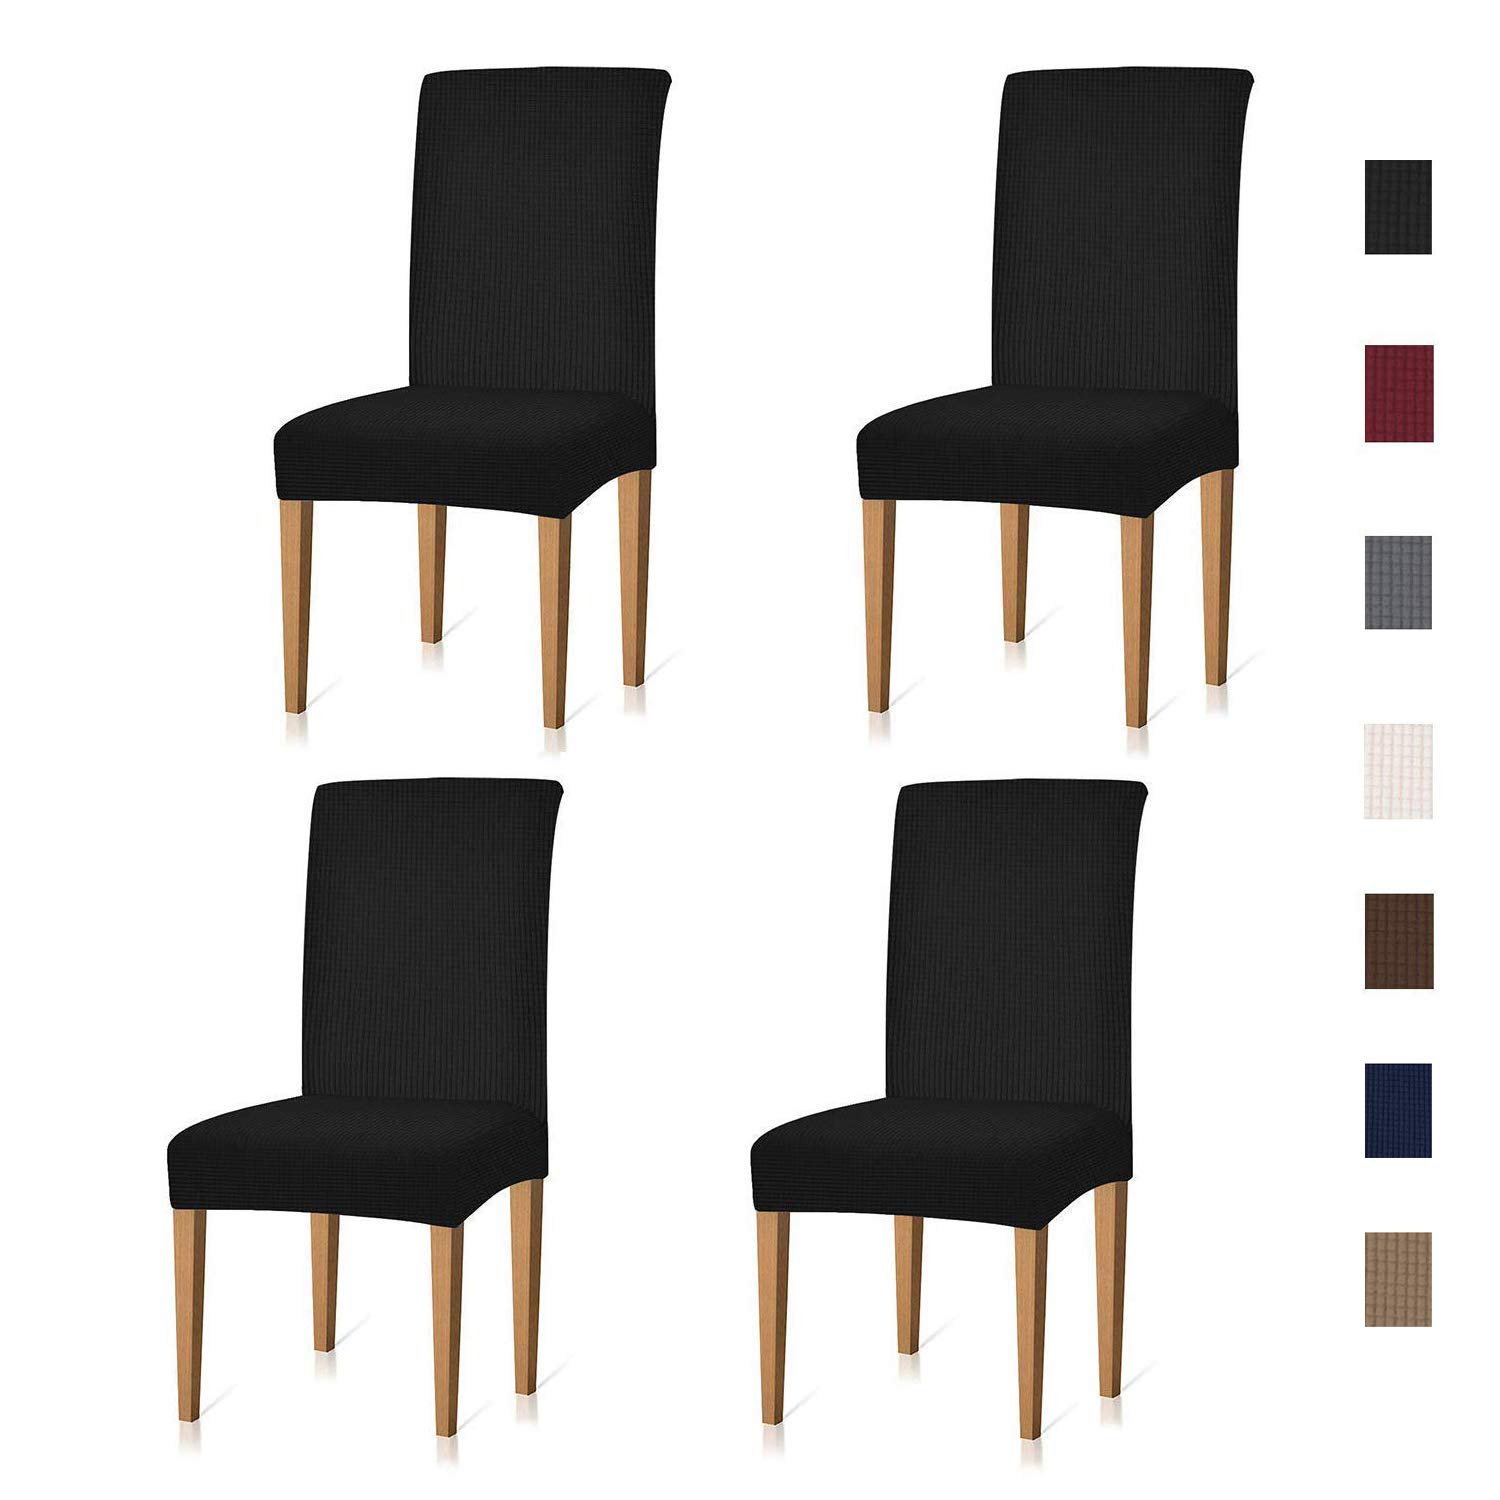 Xflyee Stretch Dining Room Chair Covers Jacquard Removable Washable Kitchen  Parson Chair Slipcovers Set of 4 (Black, 4 Pack)